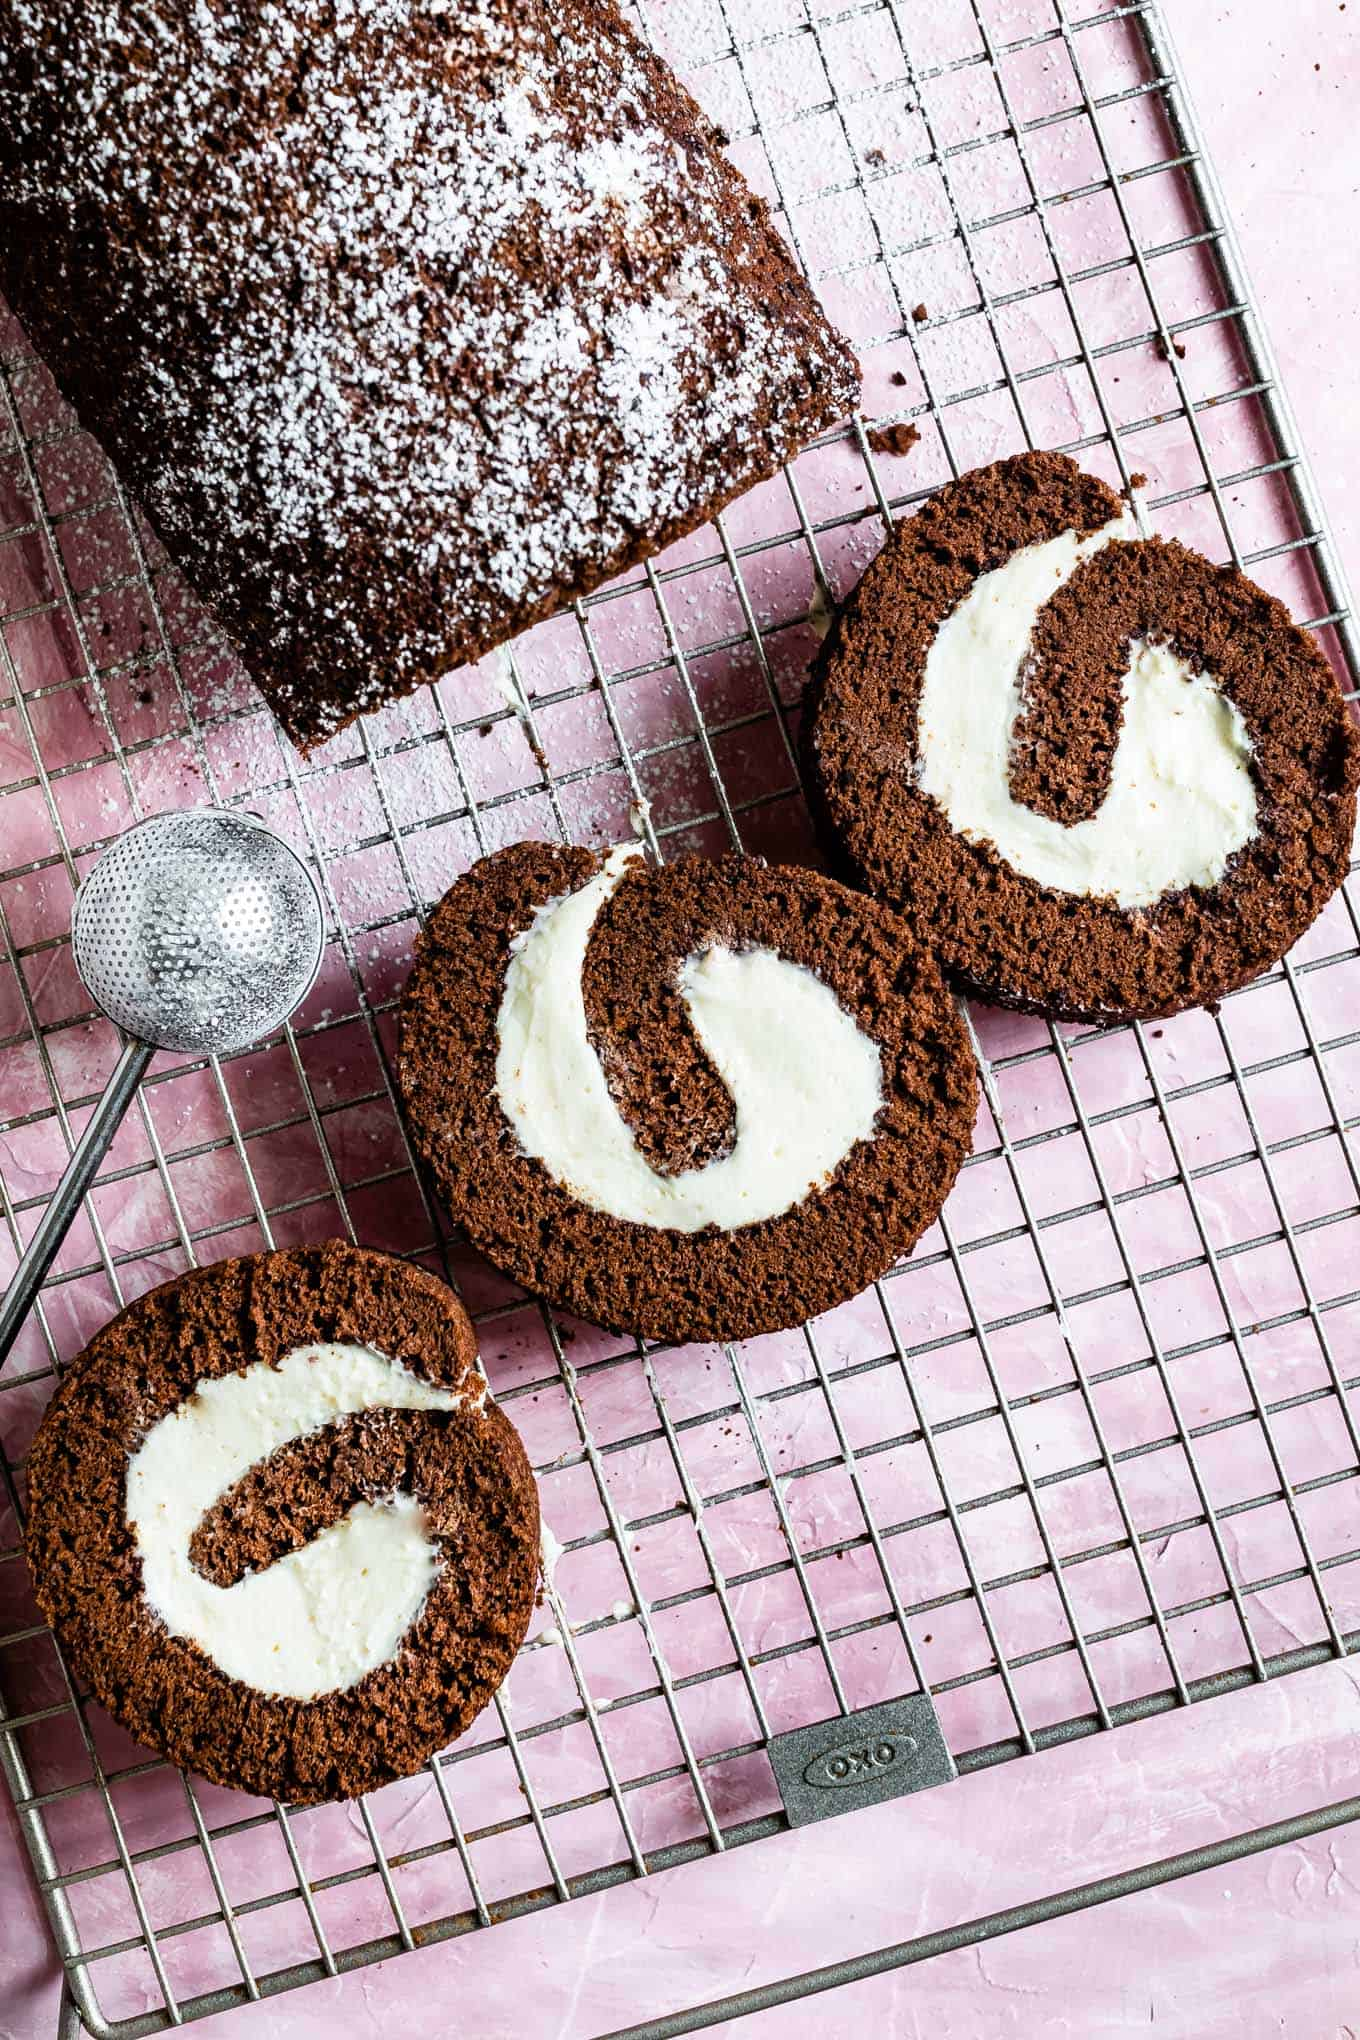 Gluten-Free Chocolate Roll Cake